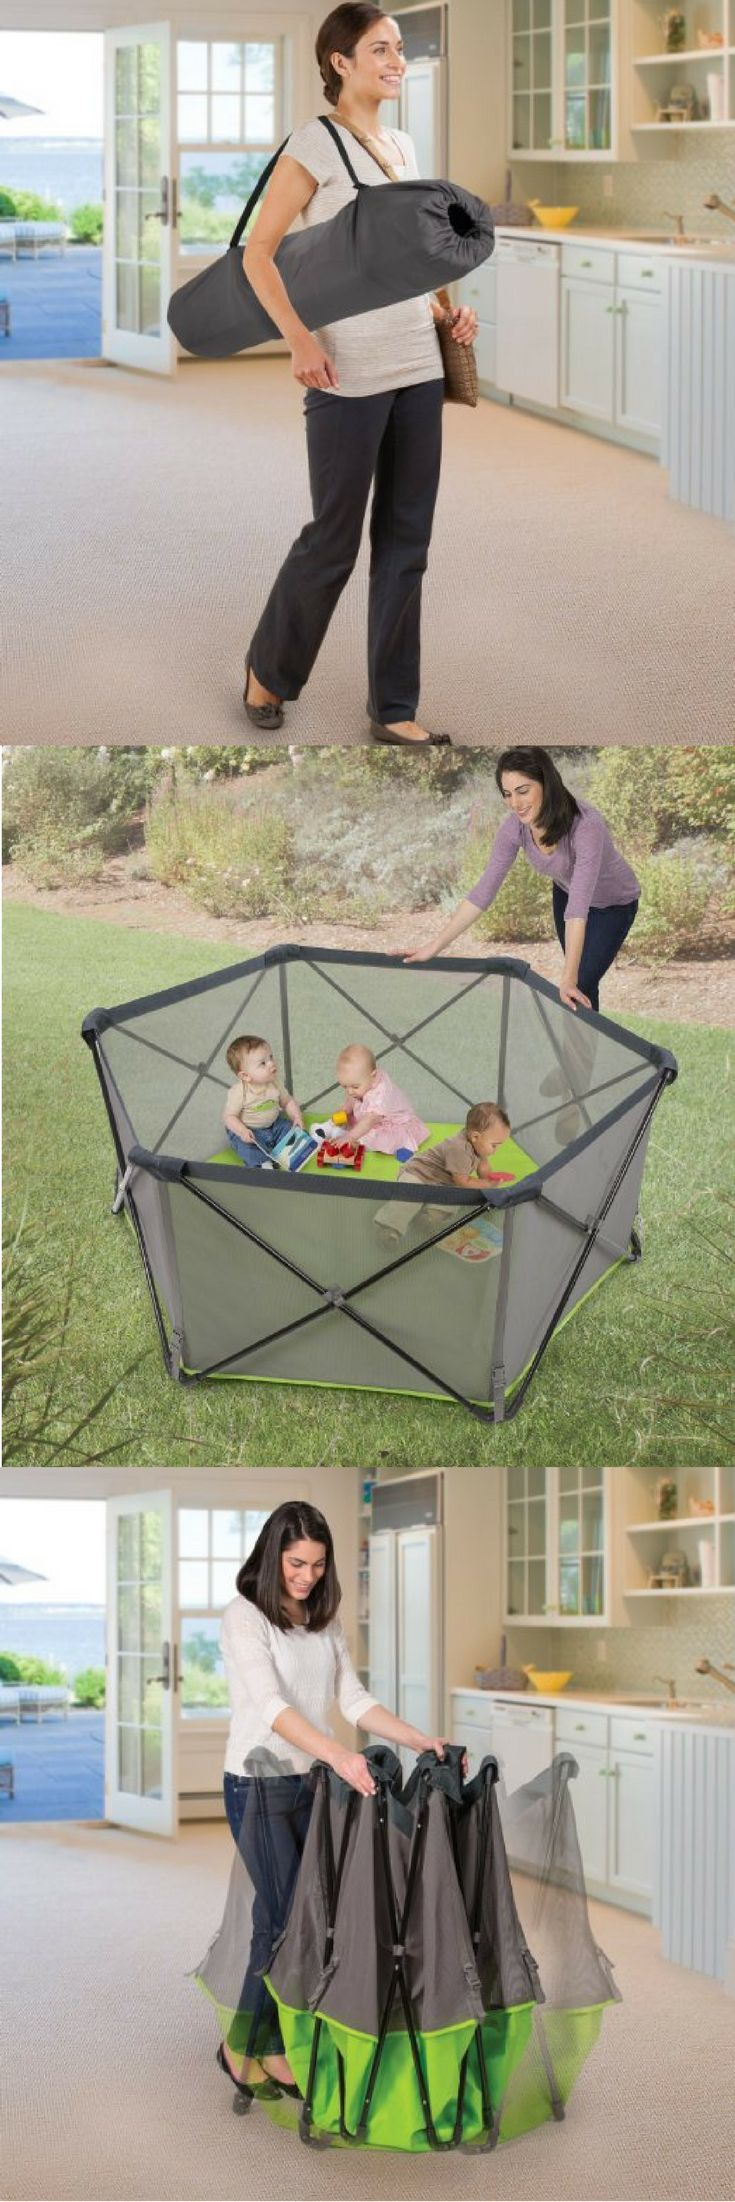 This thing has crazy good reviews on Amazon. Thinking of getting one for our holiday travels. Guaranteed to keep the kids occupied and entertained for hours!